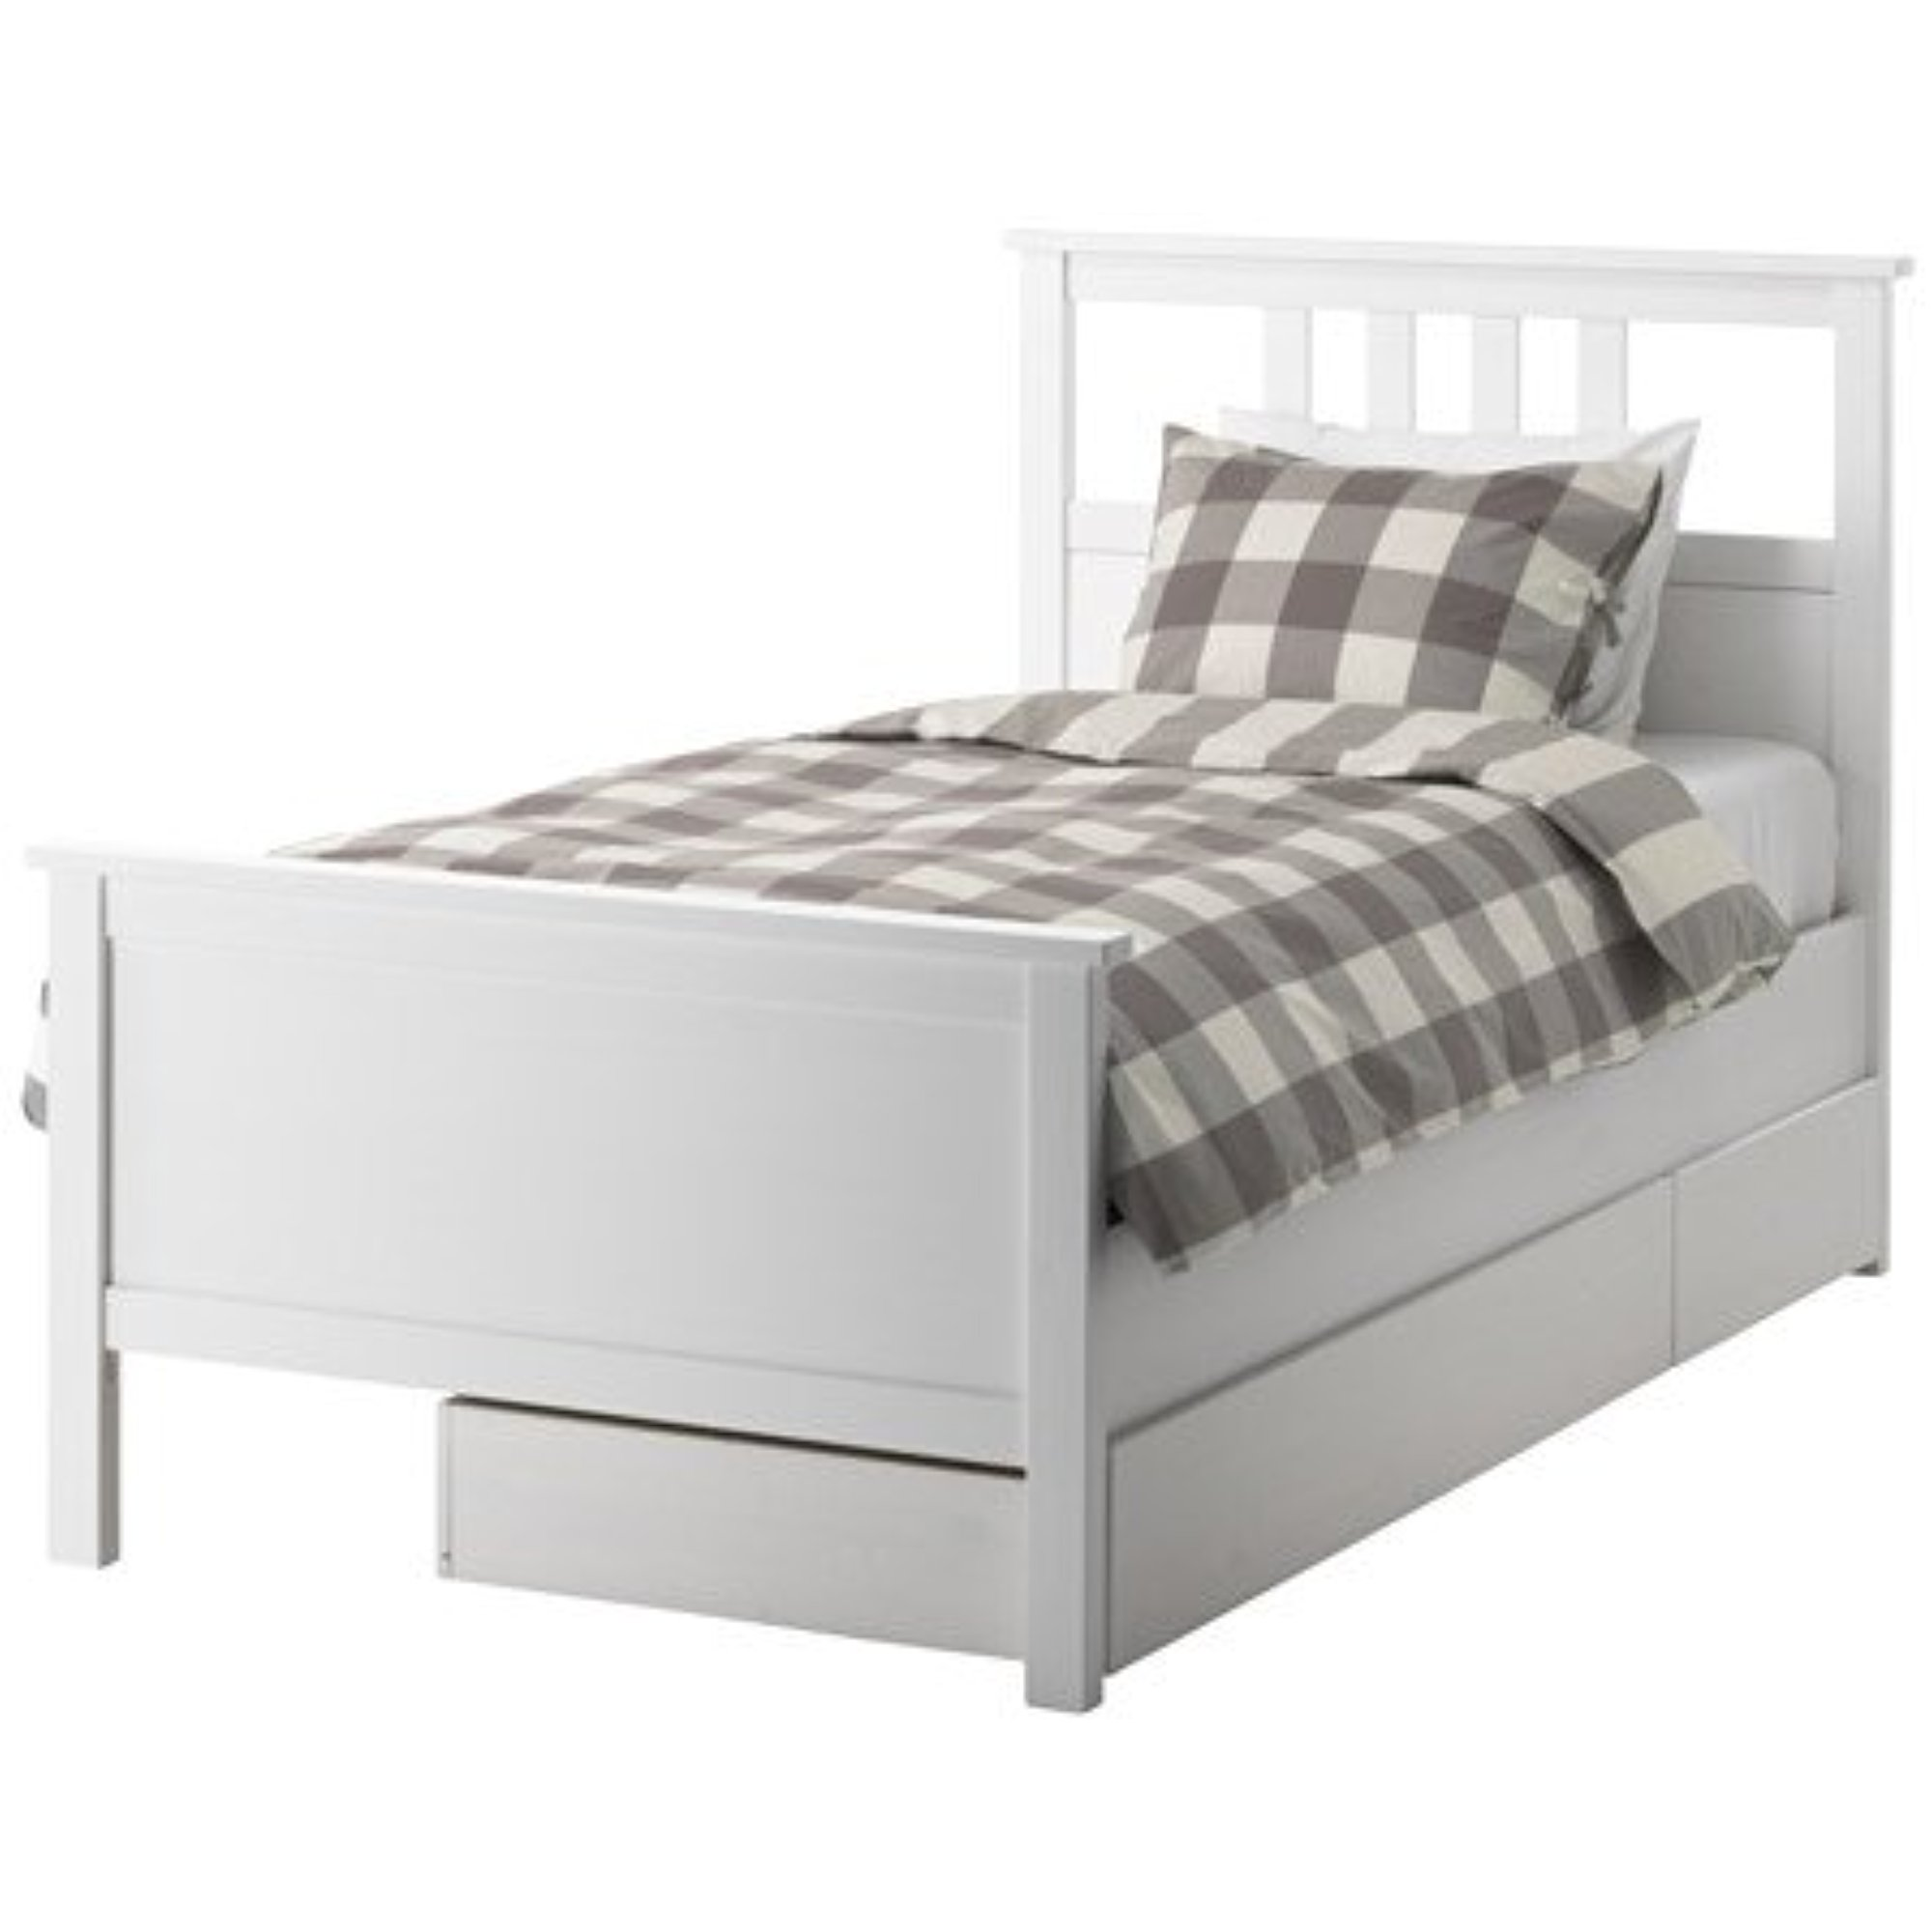 Ikea Twin Size Bed Ikea Twin Size Bed Frame With 2 Storage Boxes White Stain 10386 23811 1012